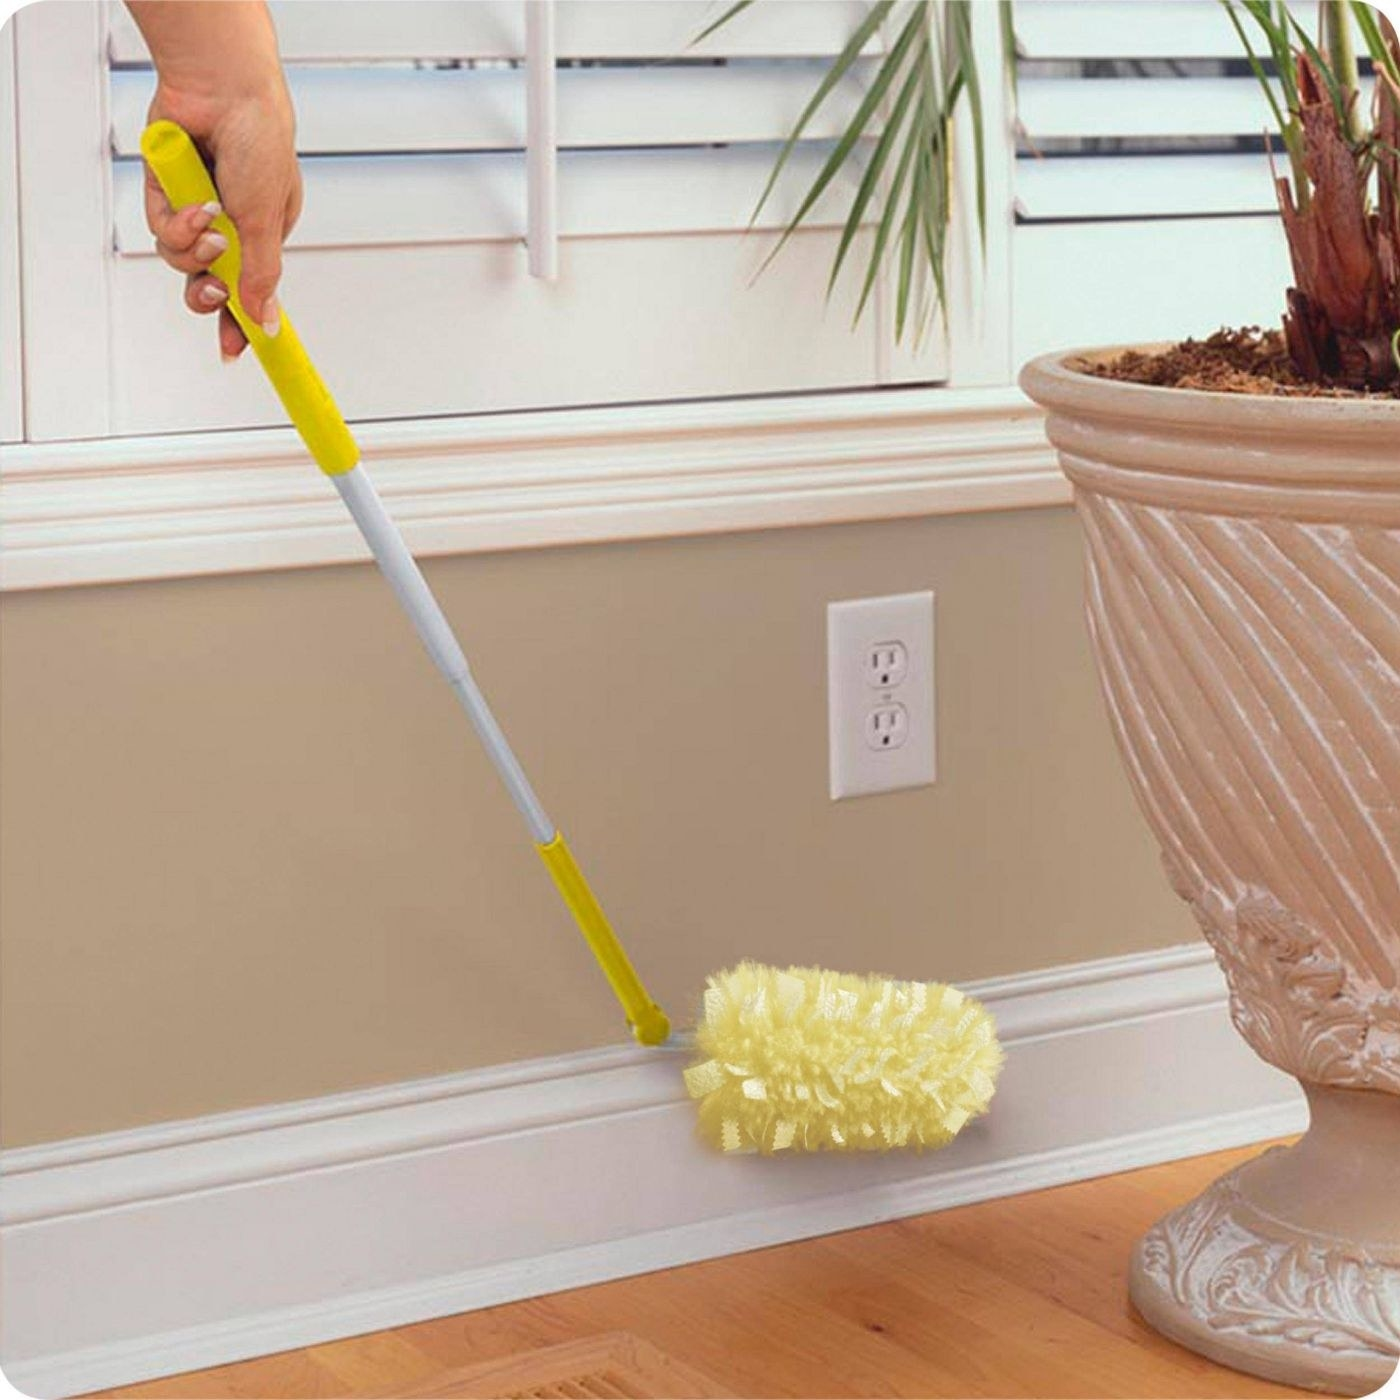 The Swiffer Duster